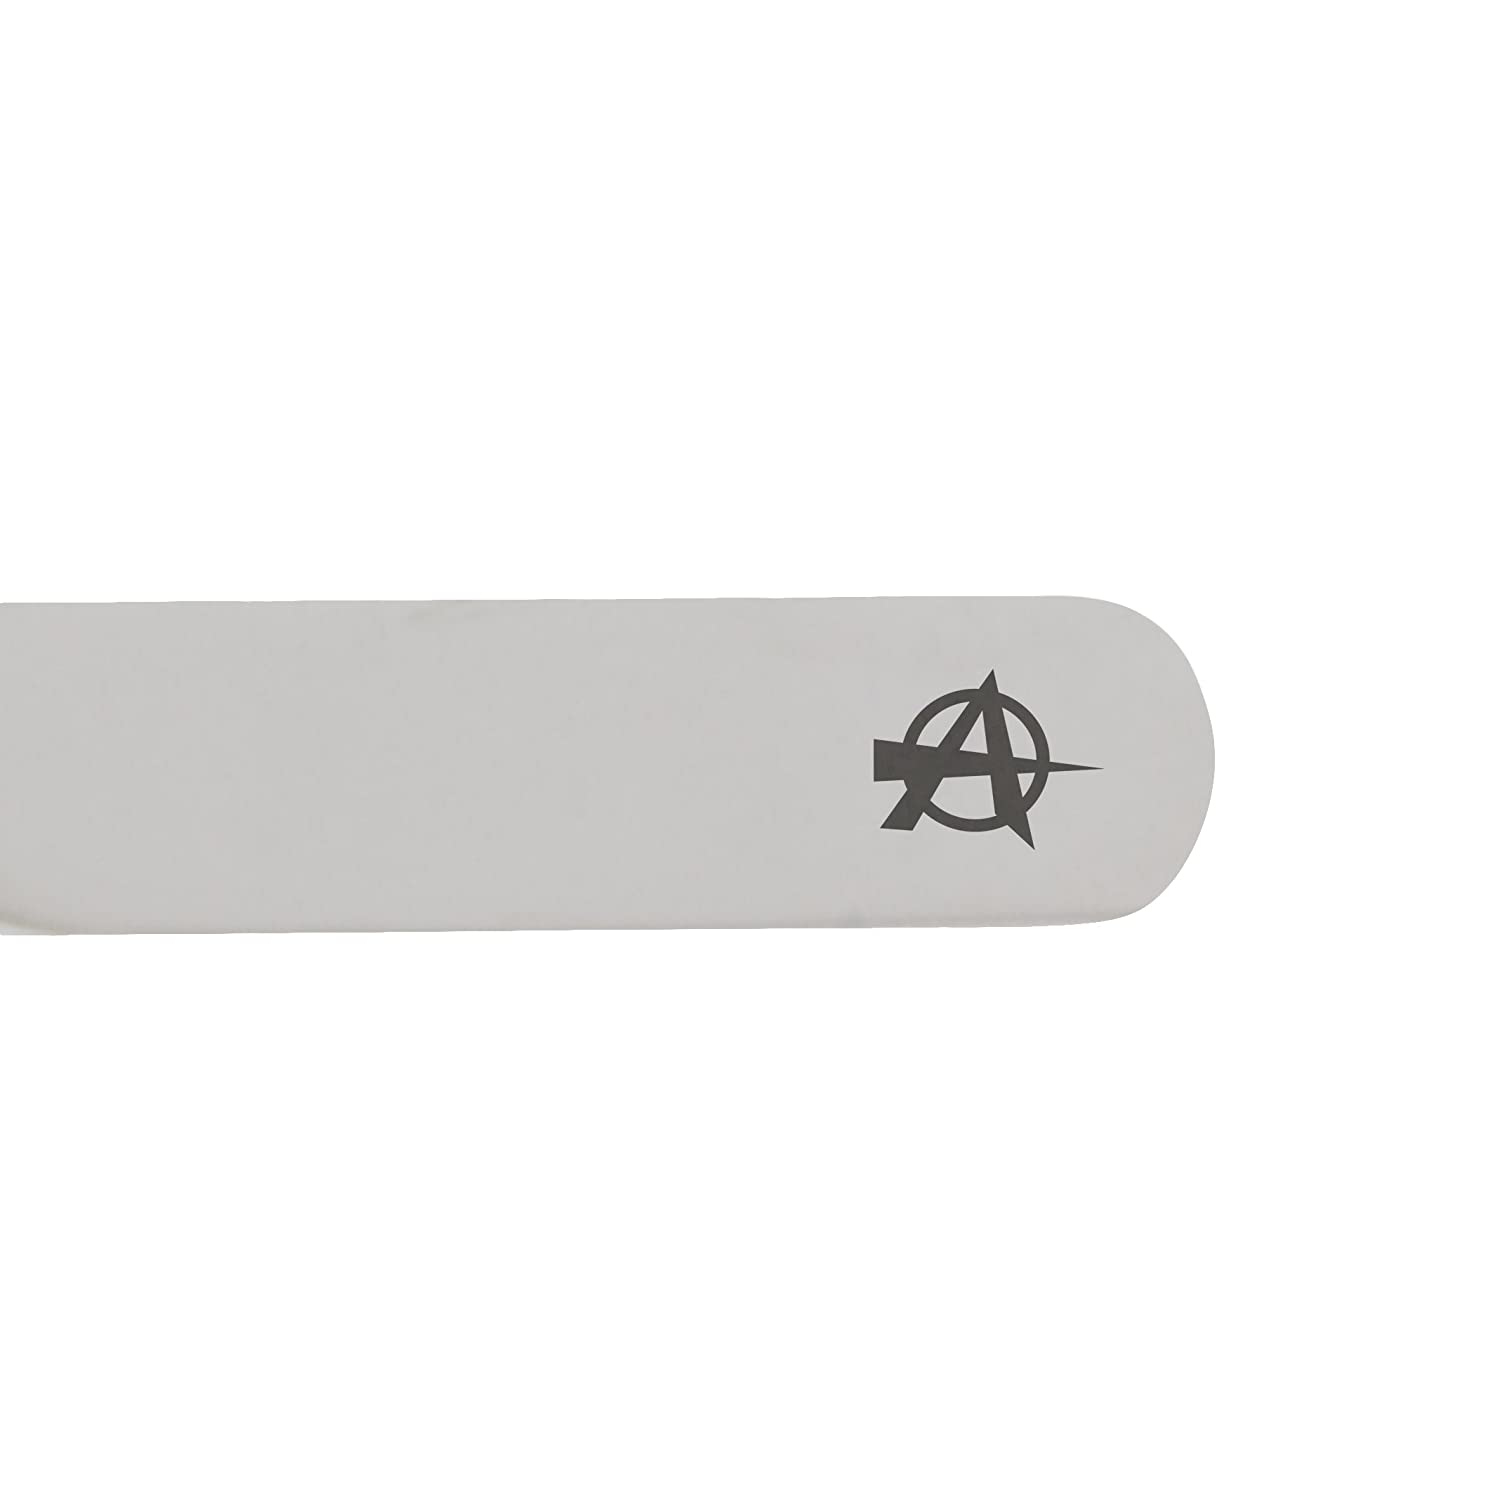 MODERN GOODS SHOP Stainless Steel Collar Stays With Laser Engraved Anarchy Design 2.5 Inch Metal Collar Stiffeners Made In USA